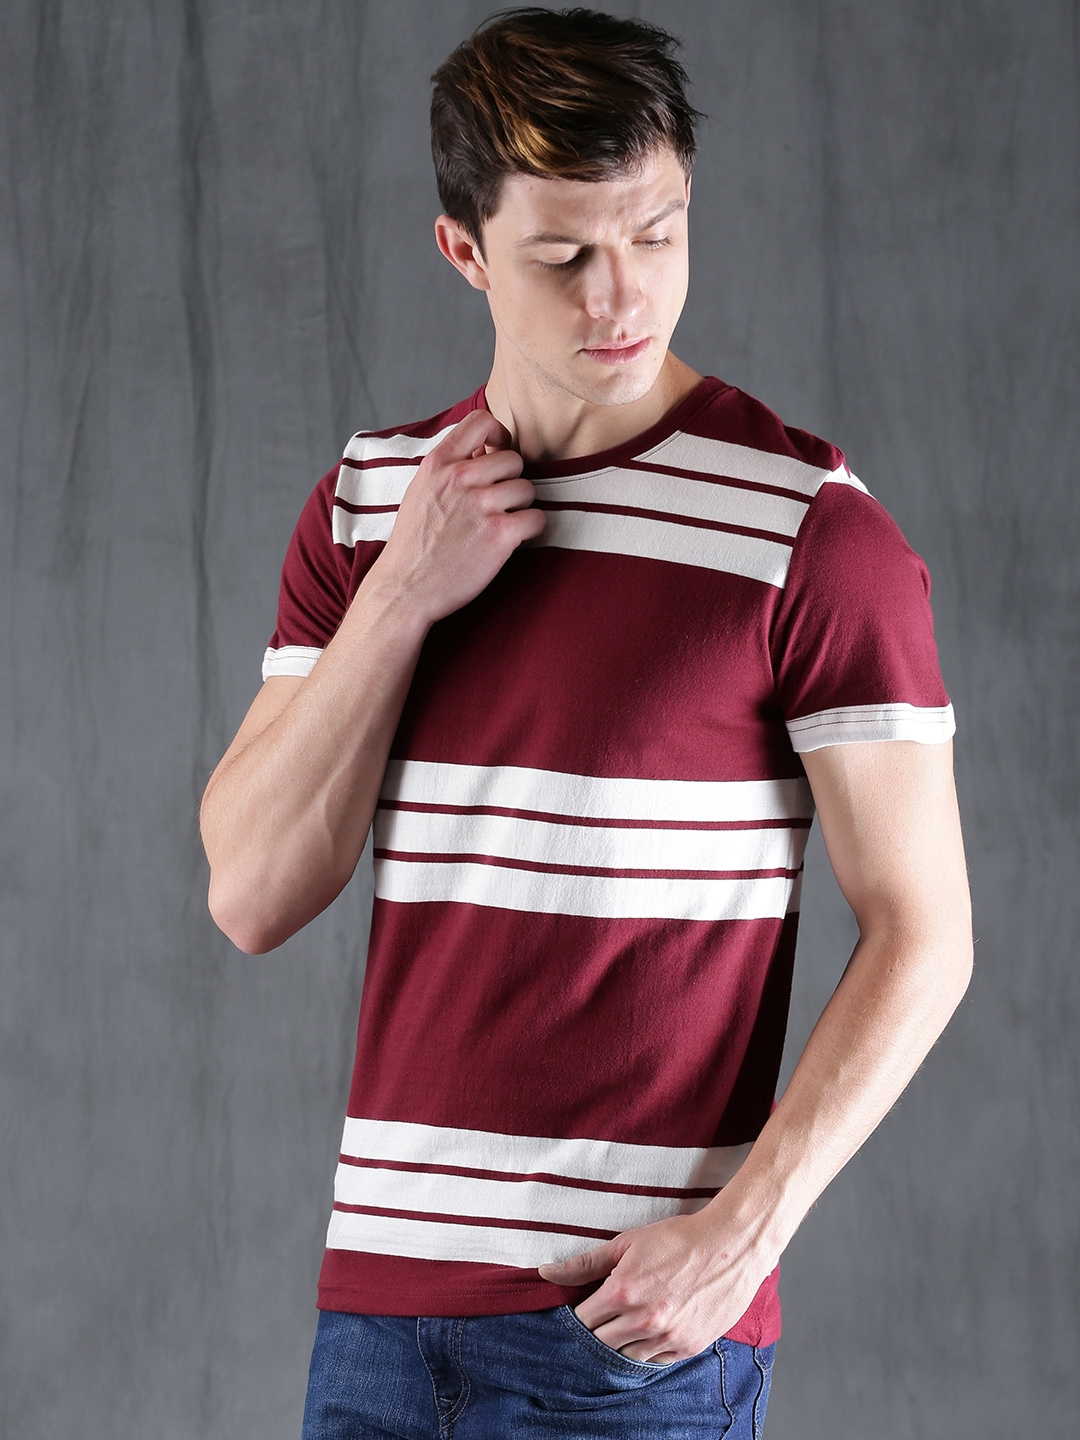 WROGN Men Maroon   White Striped T shirt